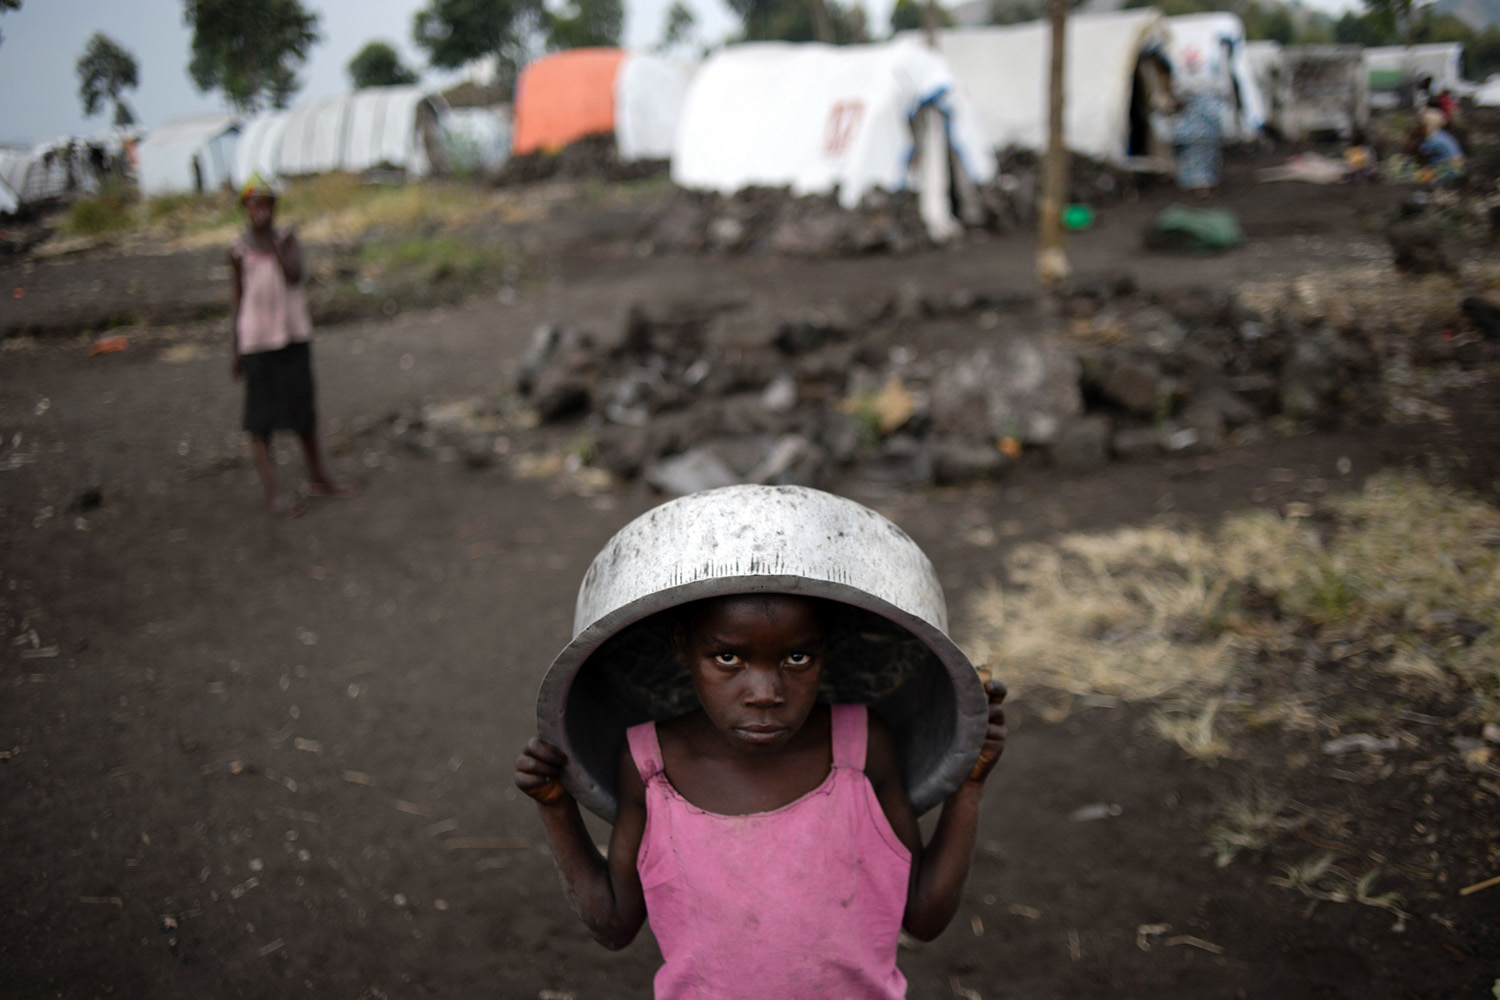 Jul. 14, 2014. A displaced Congolese child carries a basin  at the Bulengo camp for internally displaced persons (IDPs), 20 kms west of Goma in the east of the Democratic Republic of the Congo.